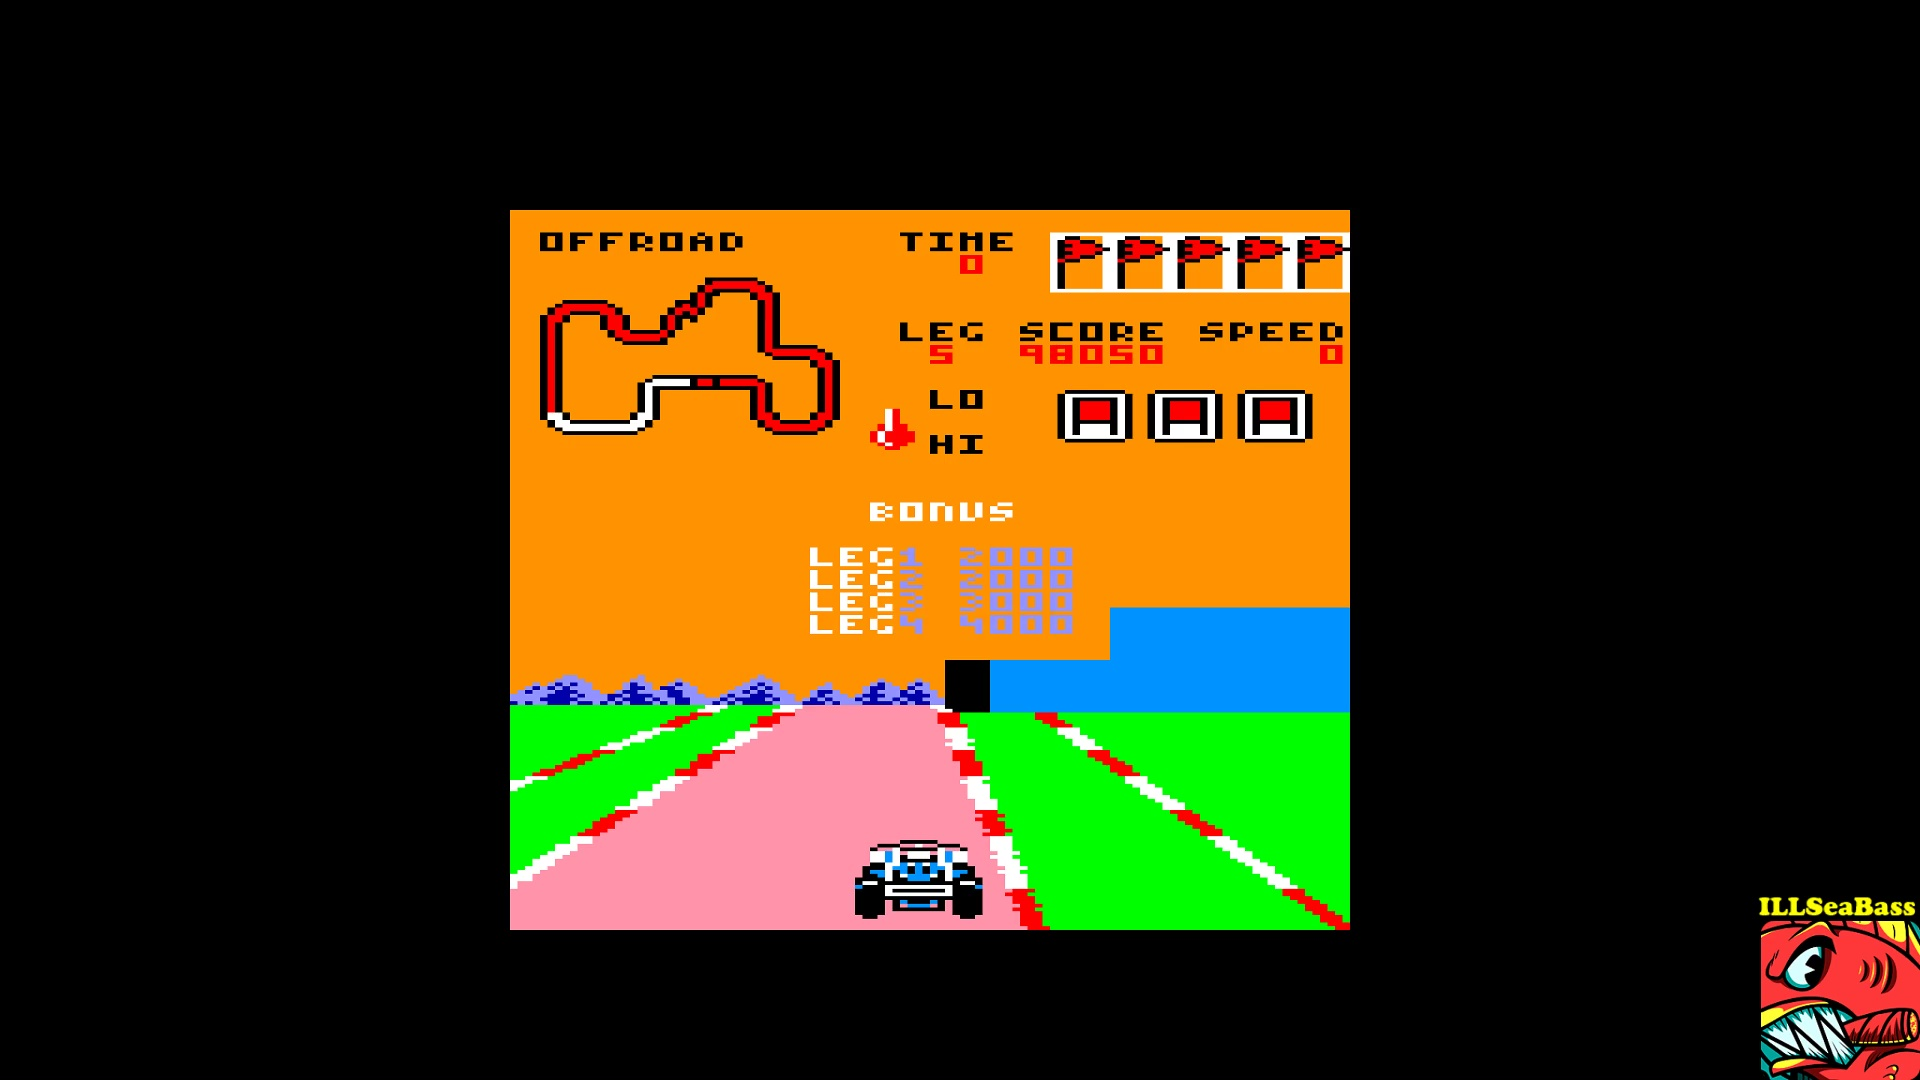 ILLSeaBass: Buggy Boy [Offroad] (Amstrad CPC Emulated) 98,050 points on 2017-10-27 20:01:31